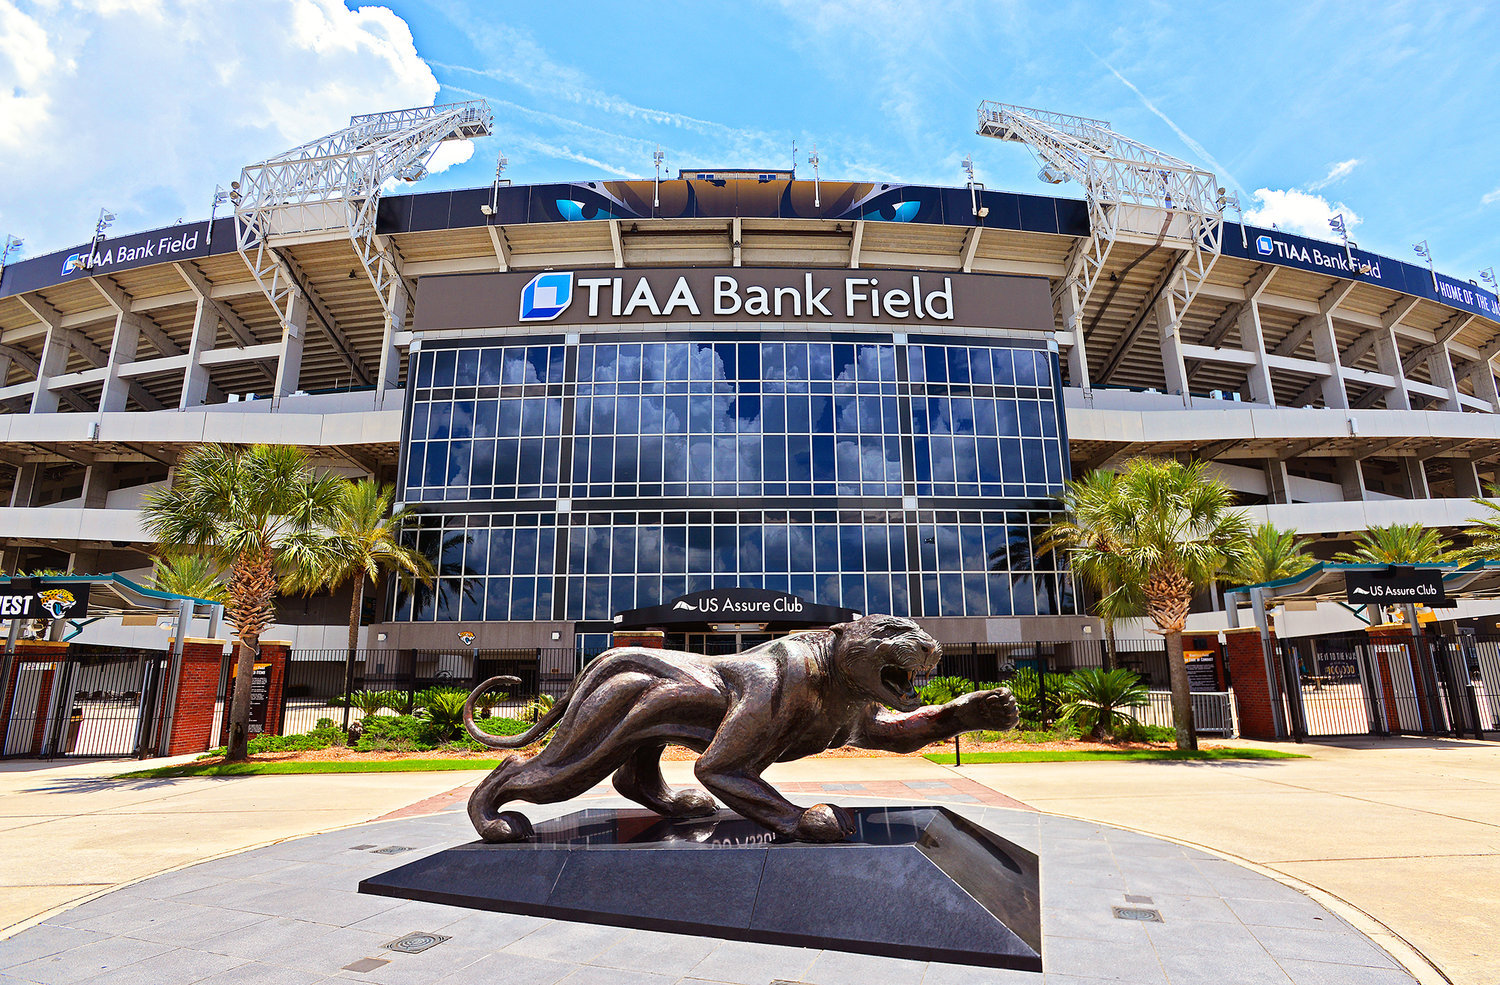 TIAA Bank Field in Jacksonville, FL